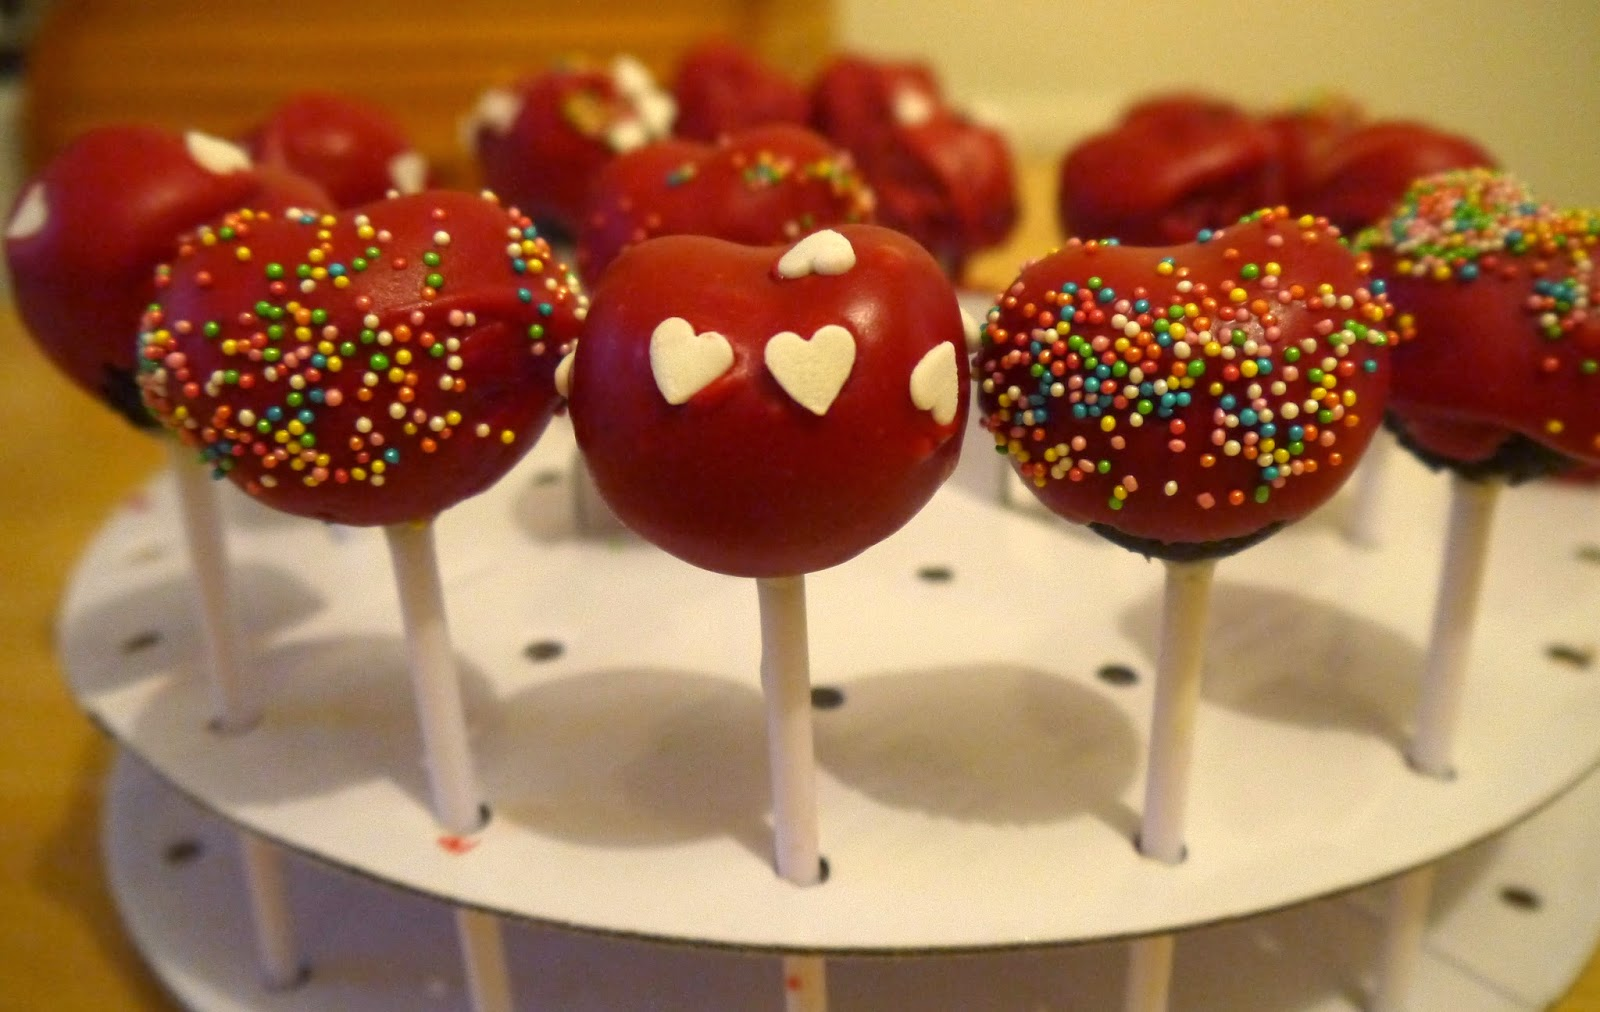 Fiona s Foodie Fun: Valentine s Day Cake Pops